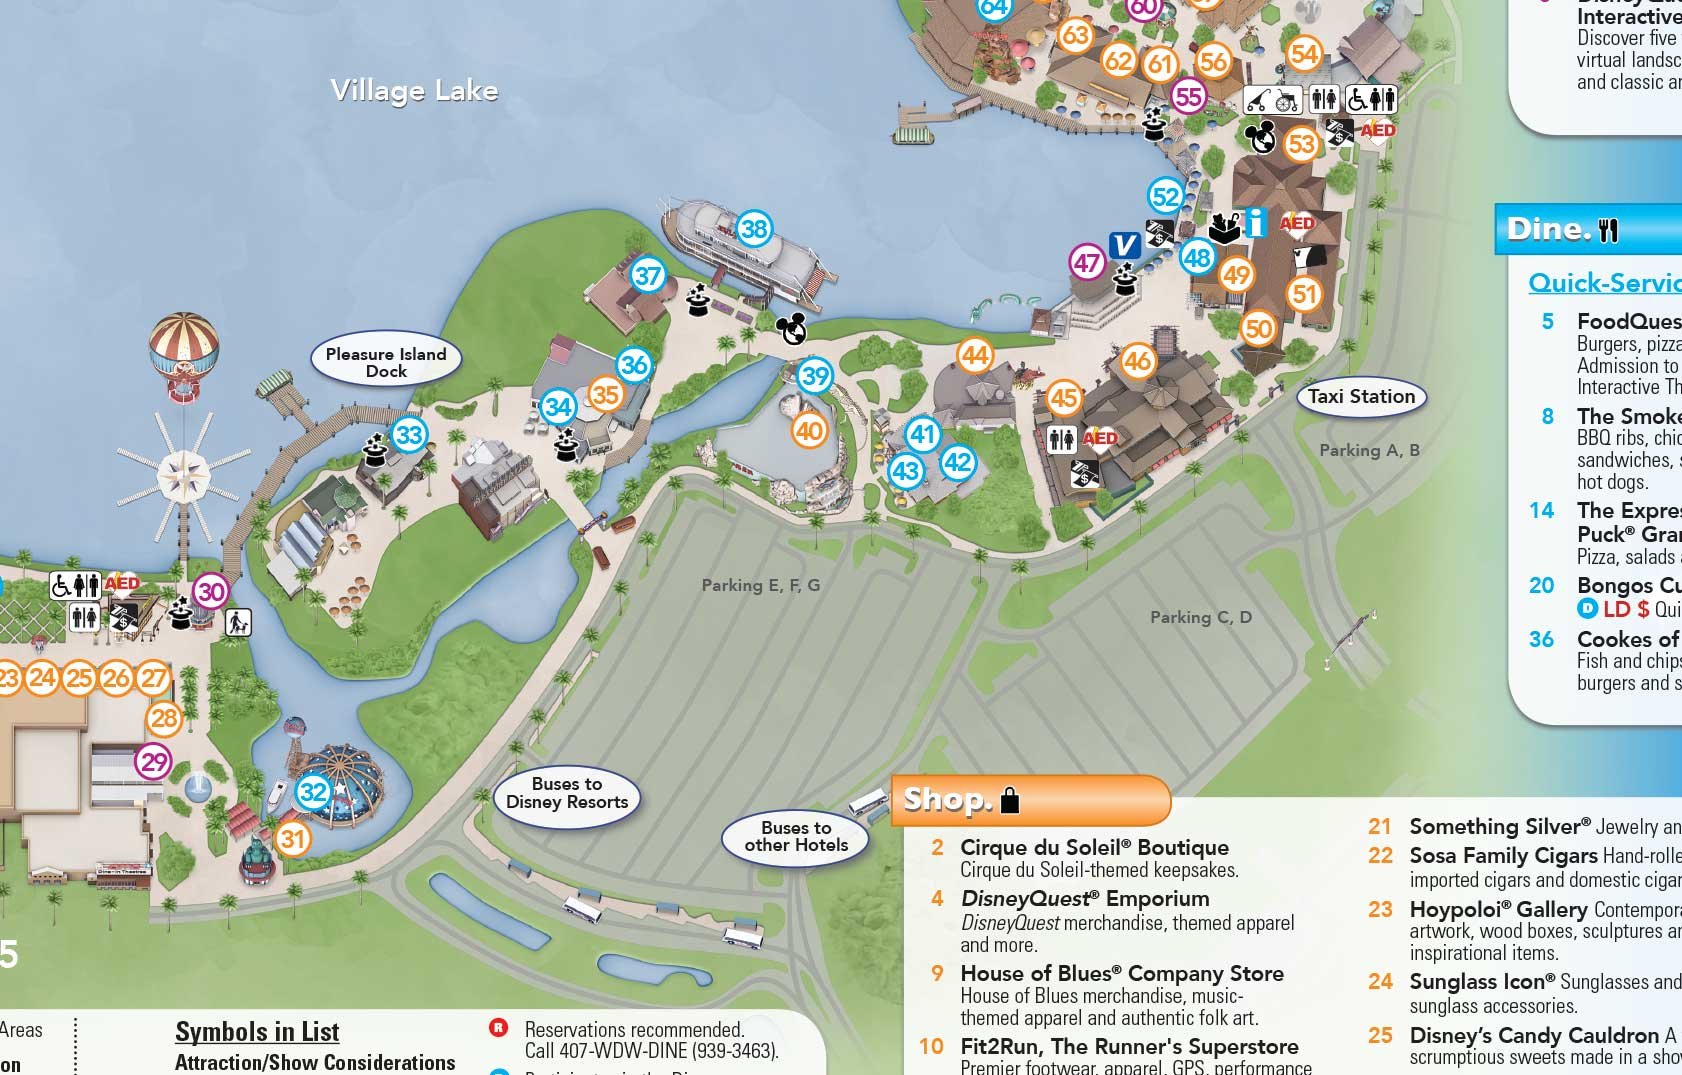 More parking lots to close at Downtown Disney for Disney ... on disney hotel orlando fl map, downtown orlando map, planet hollywood parking map, animal kingdom parking map, wet n wild parking map, 2014 disney world resort map, walt disney world map, downtown indianapolis parking map, busch gardens tampa parking map, disney boardwalk parking map, legoland florida parking map, disney hollywood studios parking map, daytona beach parking map, downtown louisville parking map, downtown phoenix parking map, disneyland parking map, disney world parking map, knott's berry farm parking map, los angeles parking map, new york city parking map,